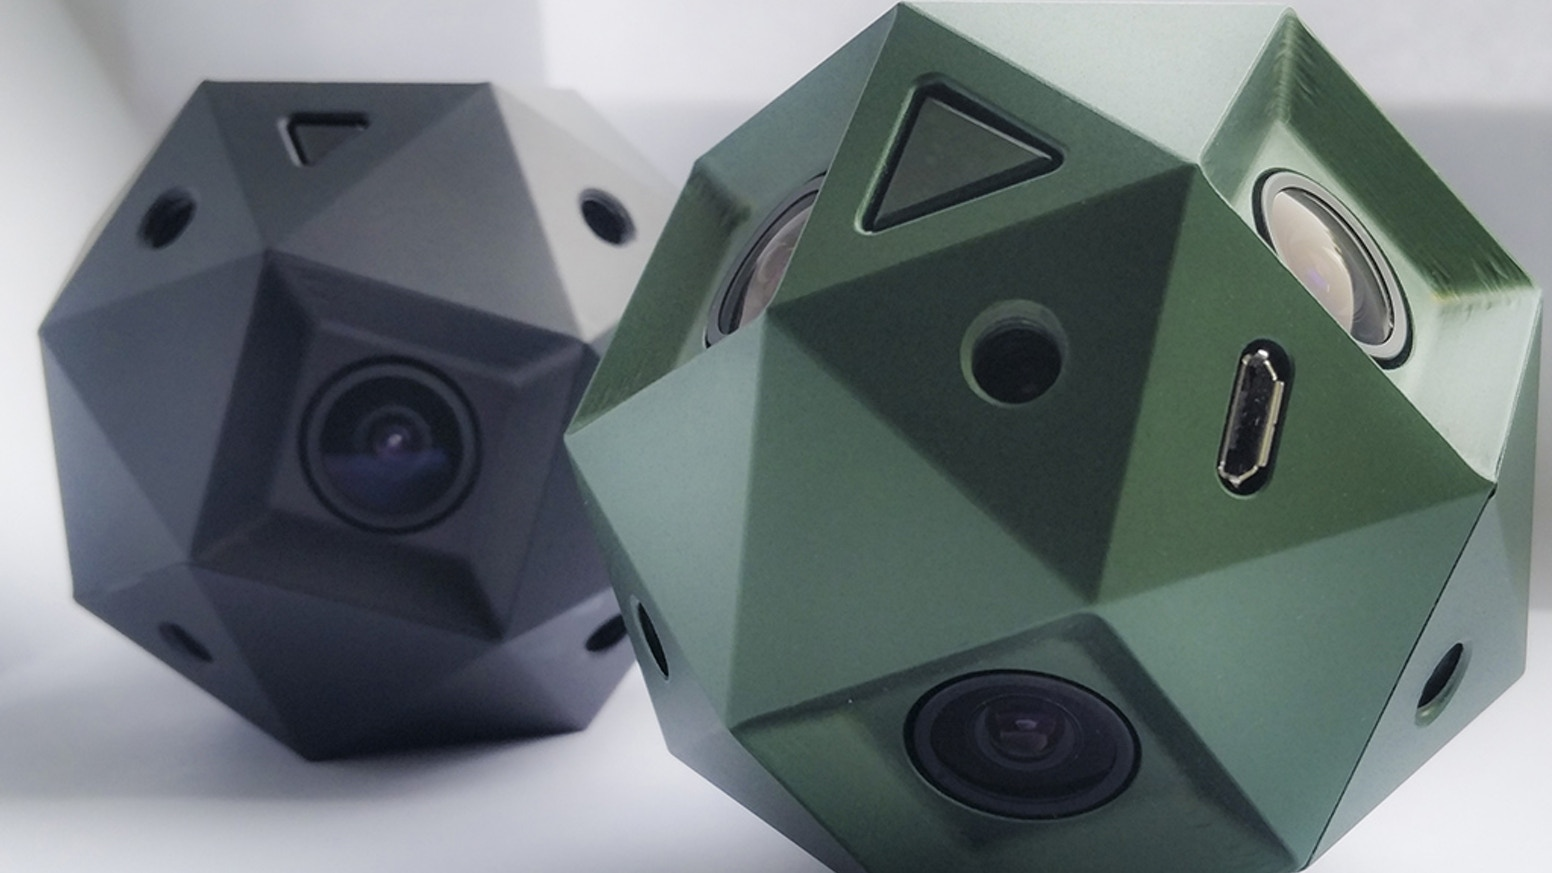 The perfect 360º camera for Oculus Rift / Google Cardboard. First ever to offer GLOBAL SHUTTER at 60FPS and 4K, 100% spherical capture.